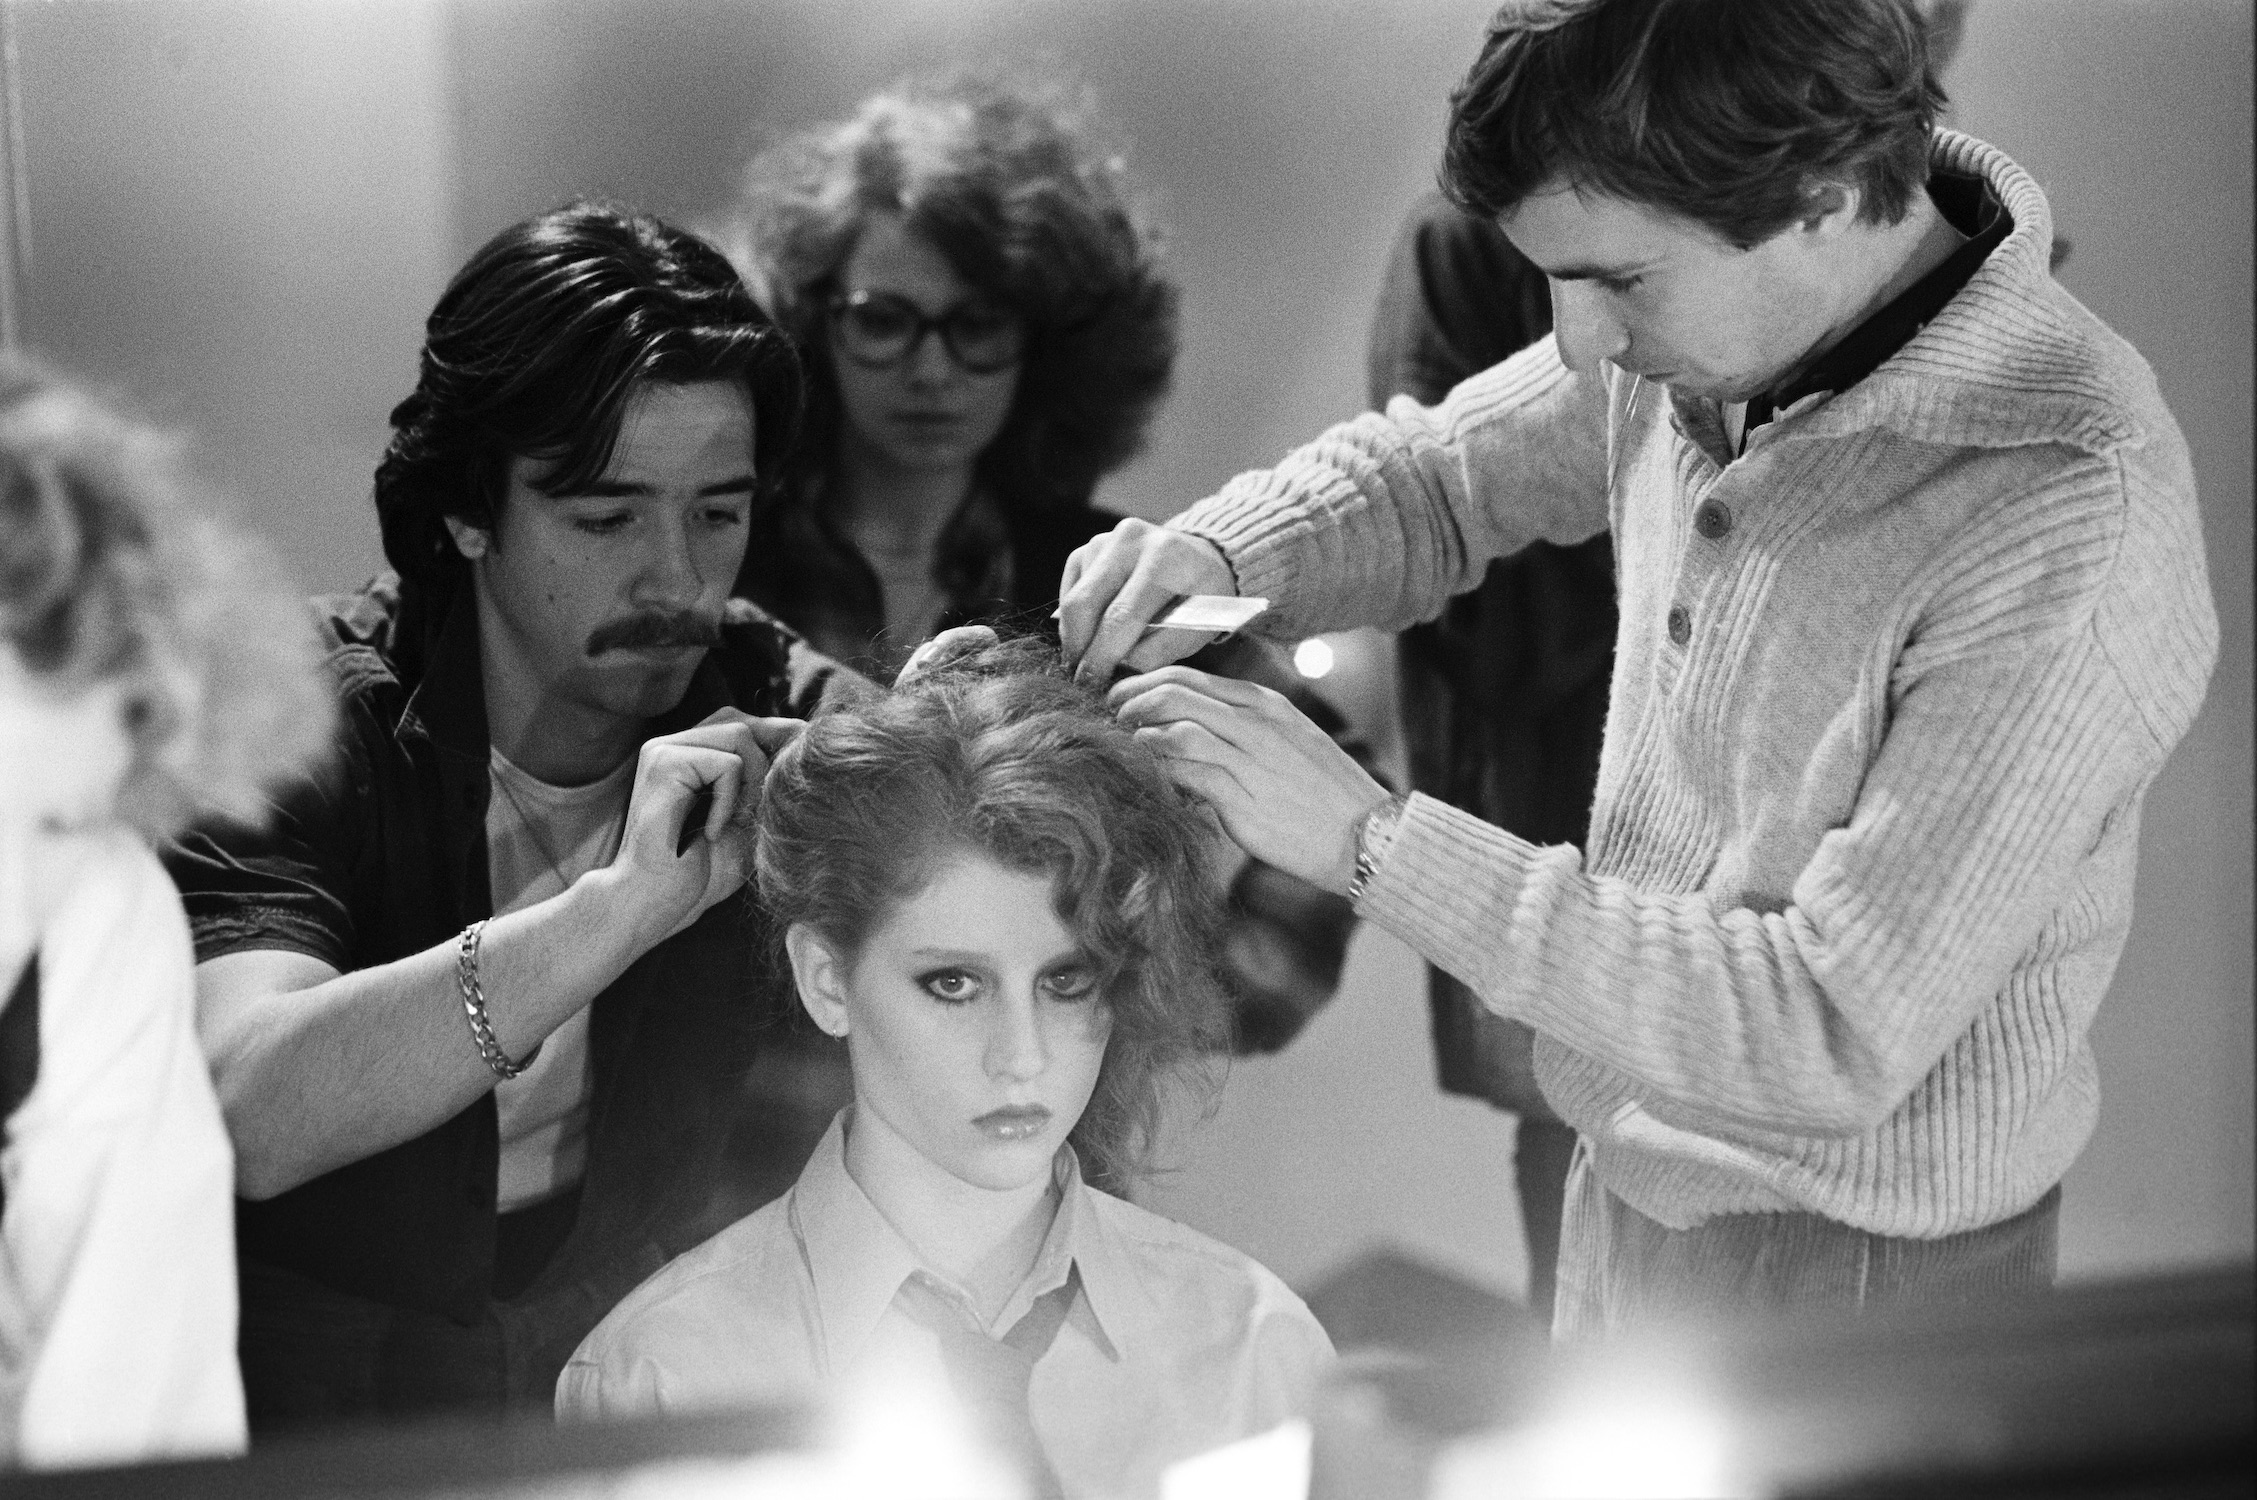 Hairstyle Before the Fashion Show, Paris 1978